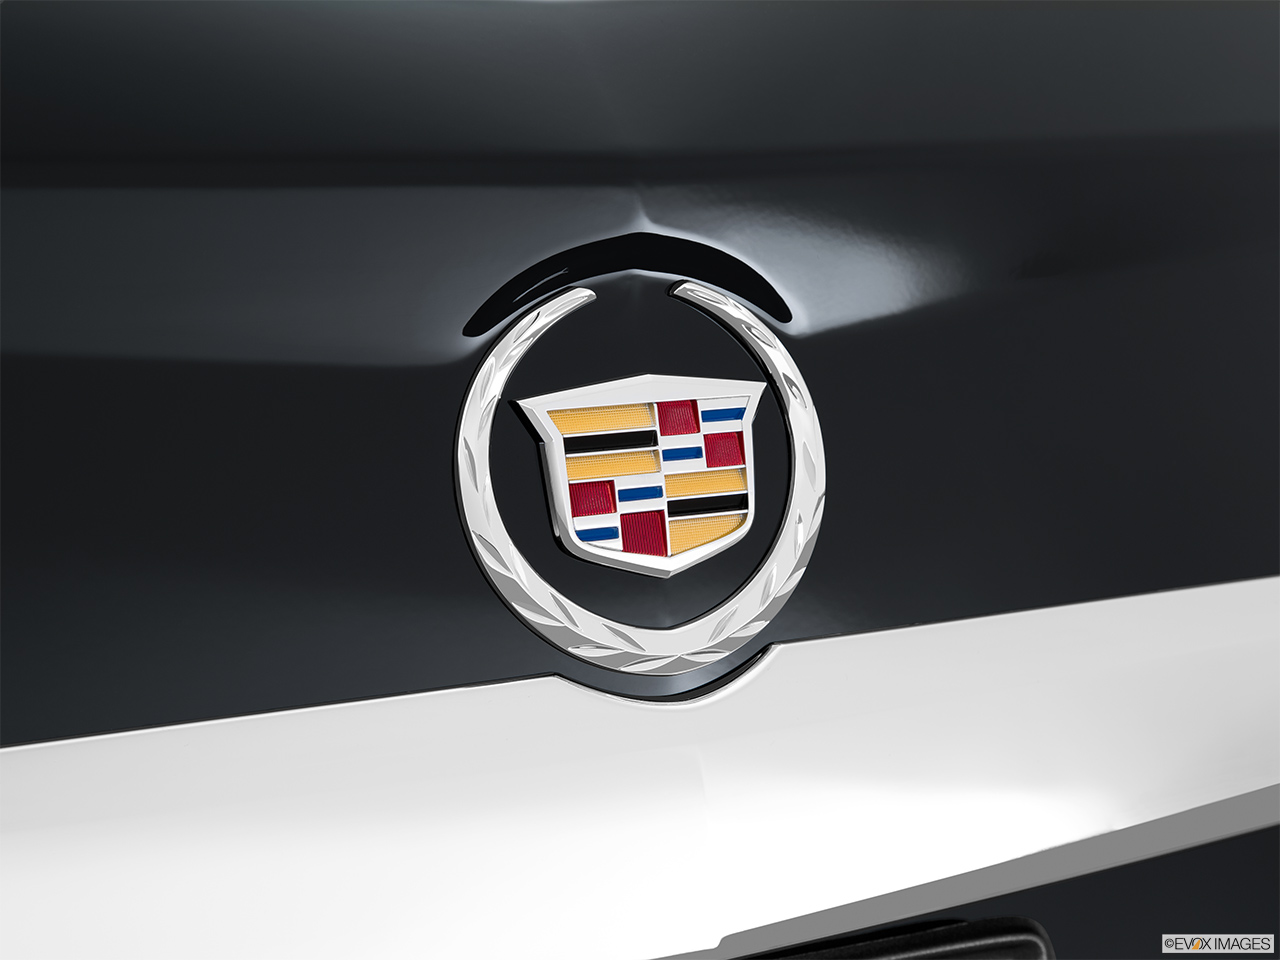 cadillac logo 2015. 2015 cadillac srx fwd 4 door luxury collection rear manufacture badgeemblem logo